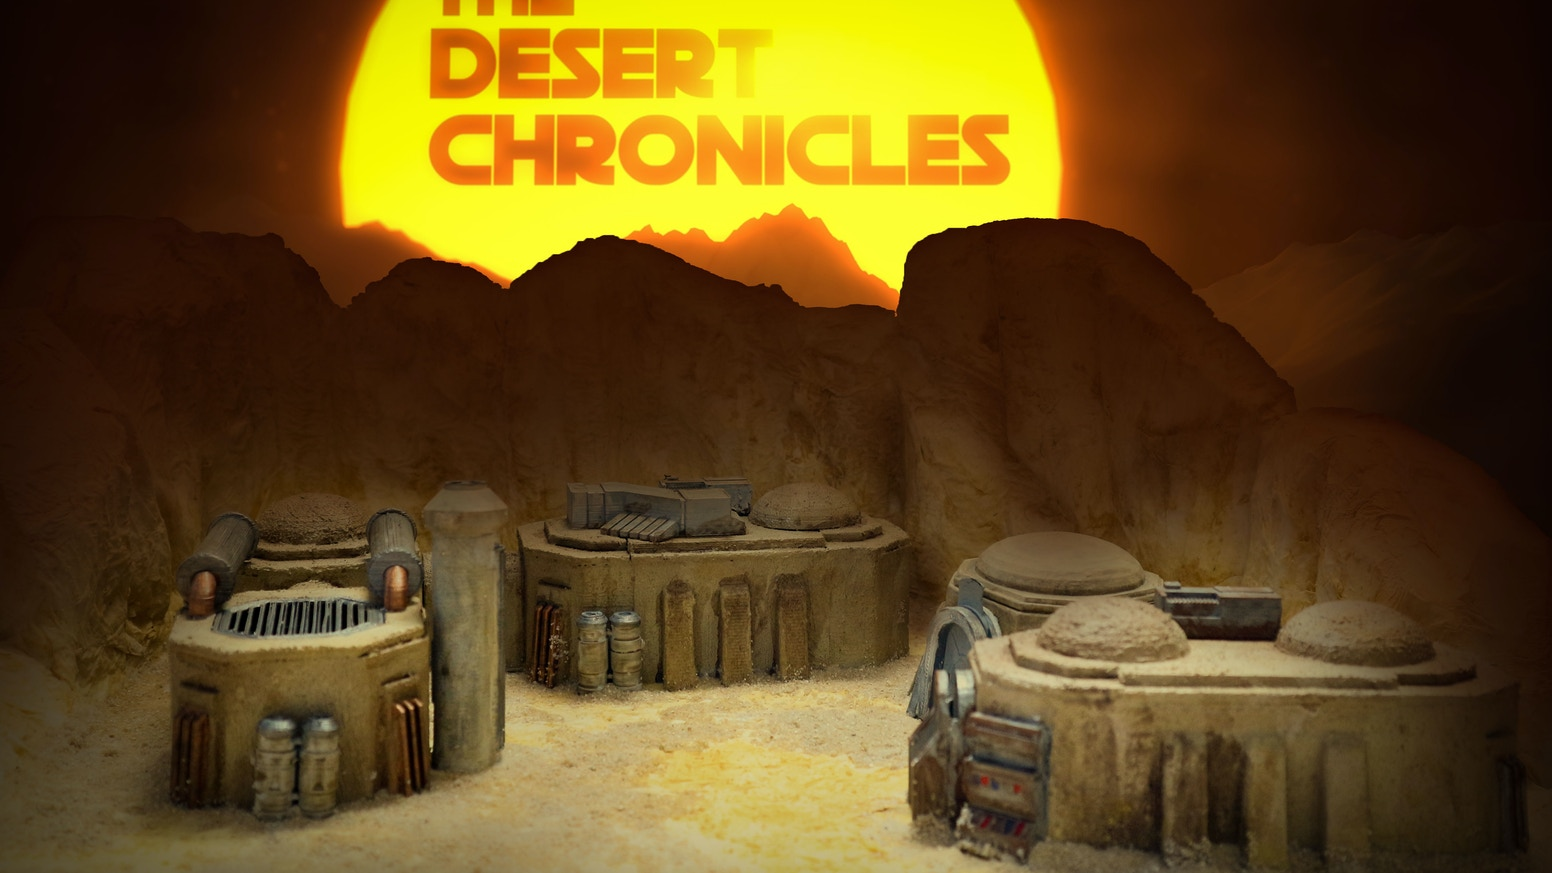 The Desert Chronicles - Tabletop Gaming 3D Printable Models - Perfect for 28 / 32 mm Wargaming Tabletop Games